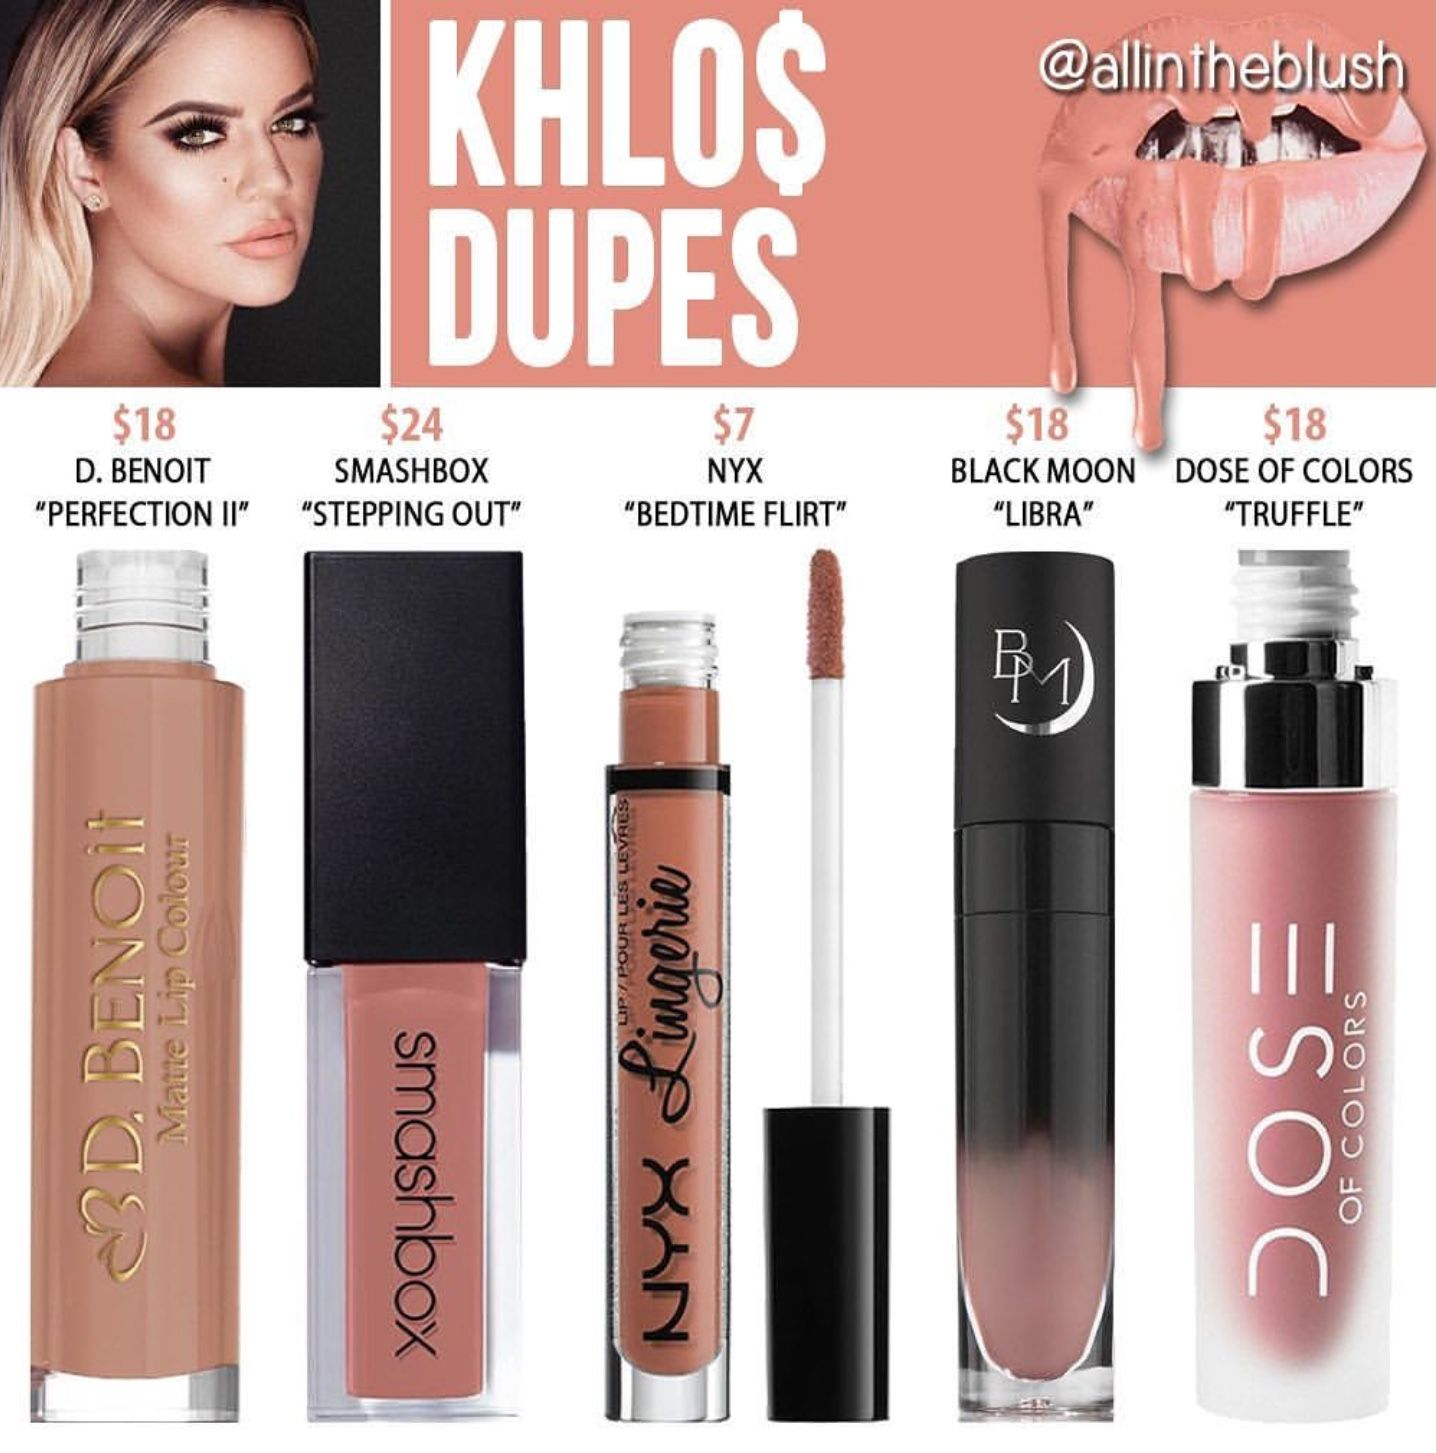 Kylie Cosmetics' newest shade from The Koko Collection in Khlo$ dupes